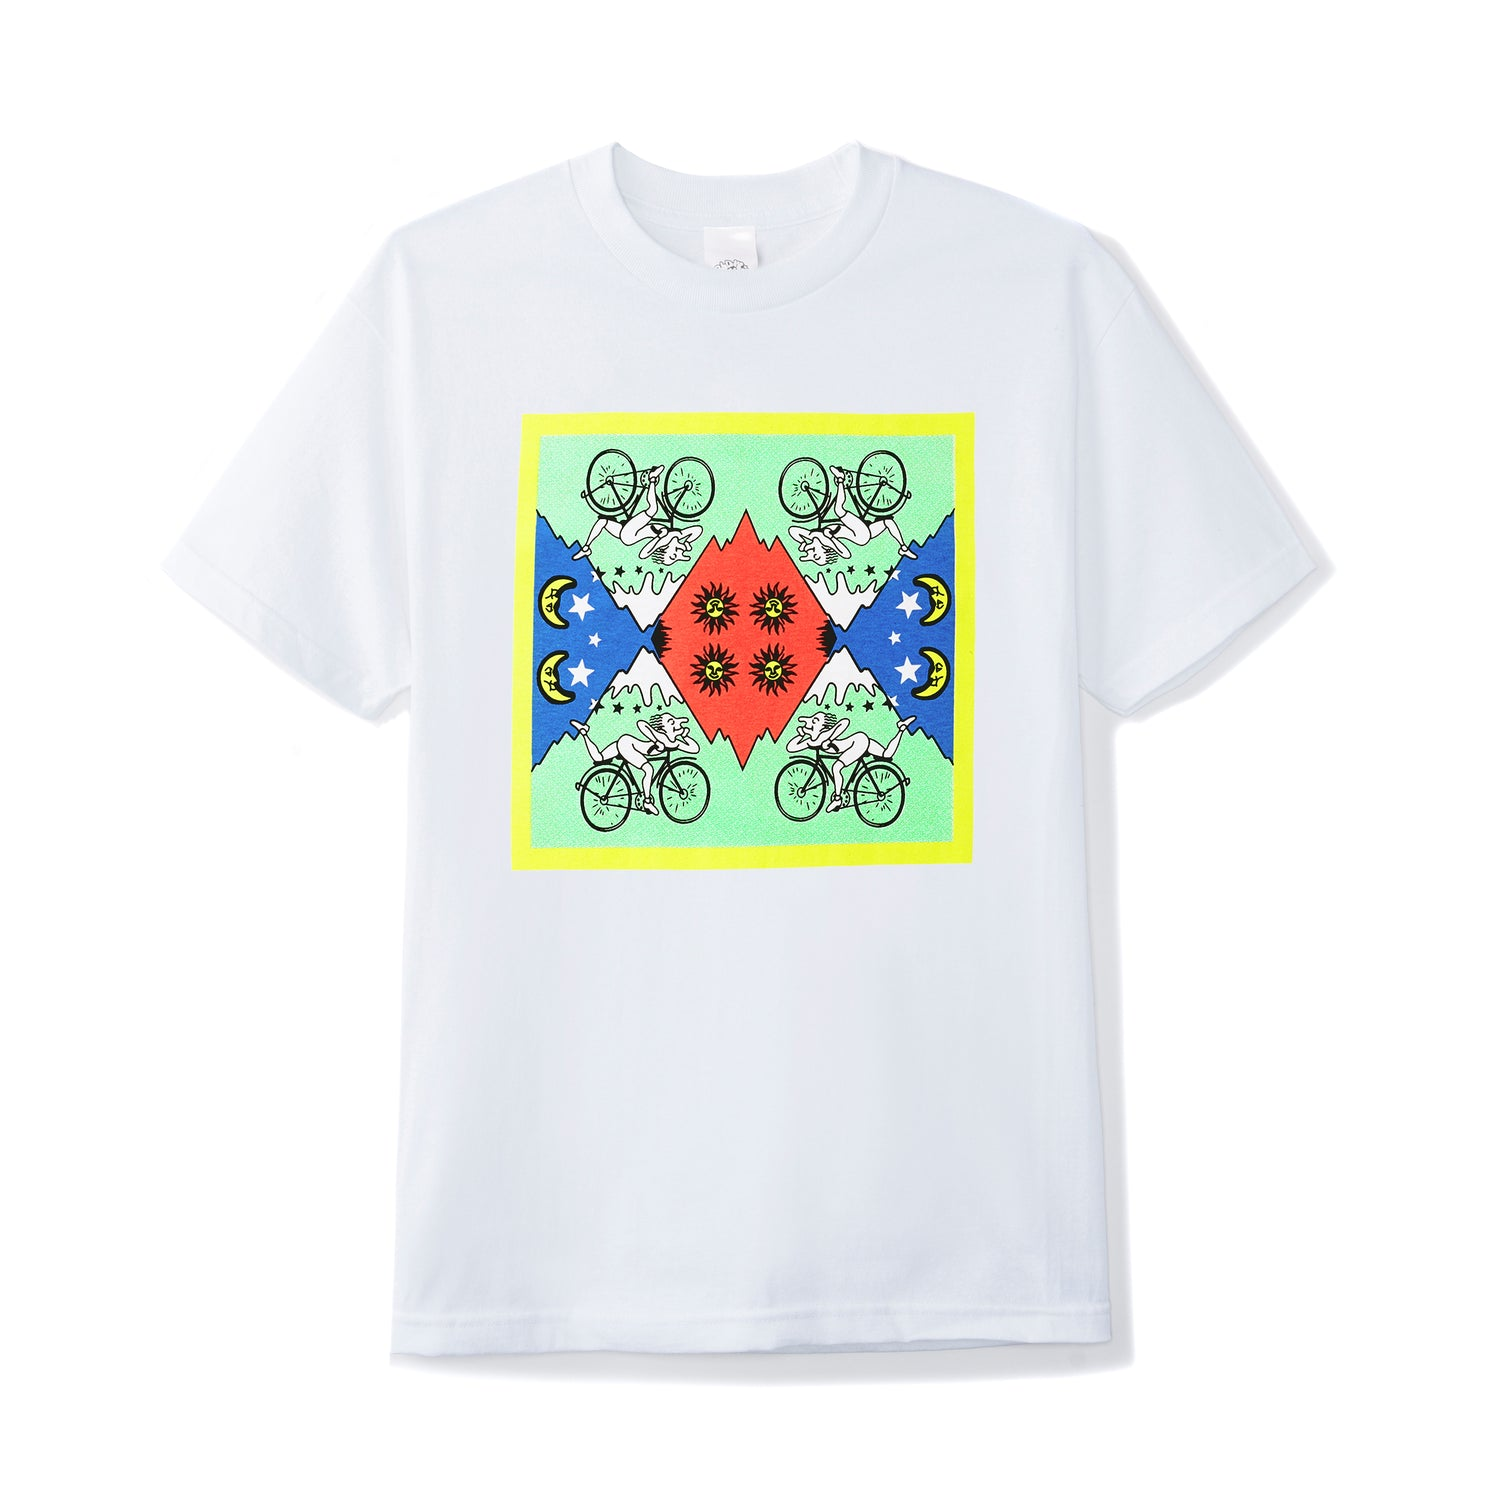 Acid Riders Bandana Tee, White